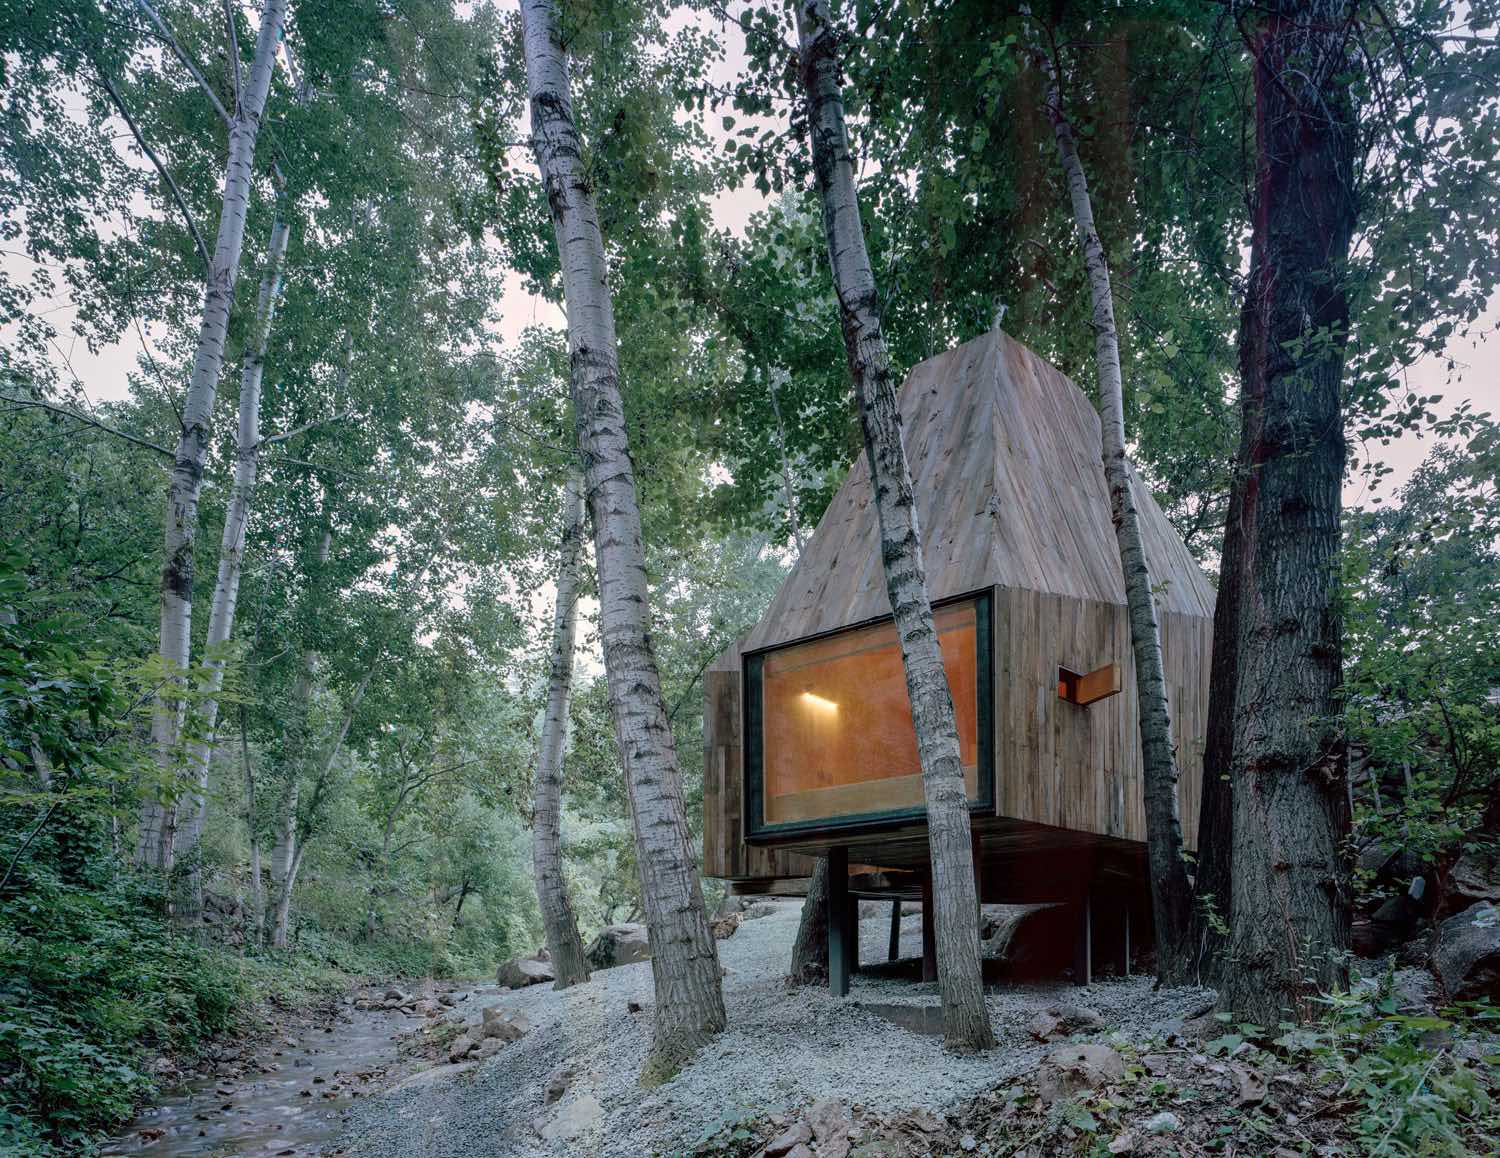 Architecture-Wee-Studio-Treehouse-1